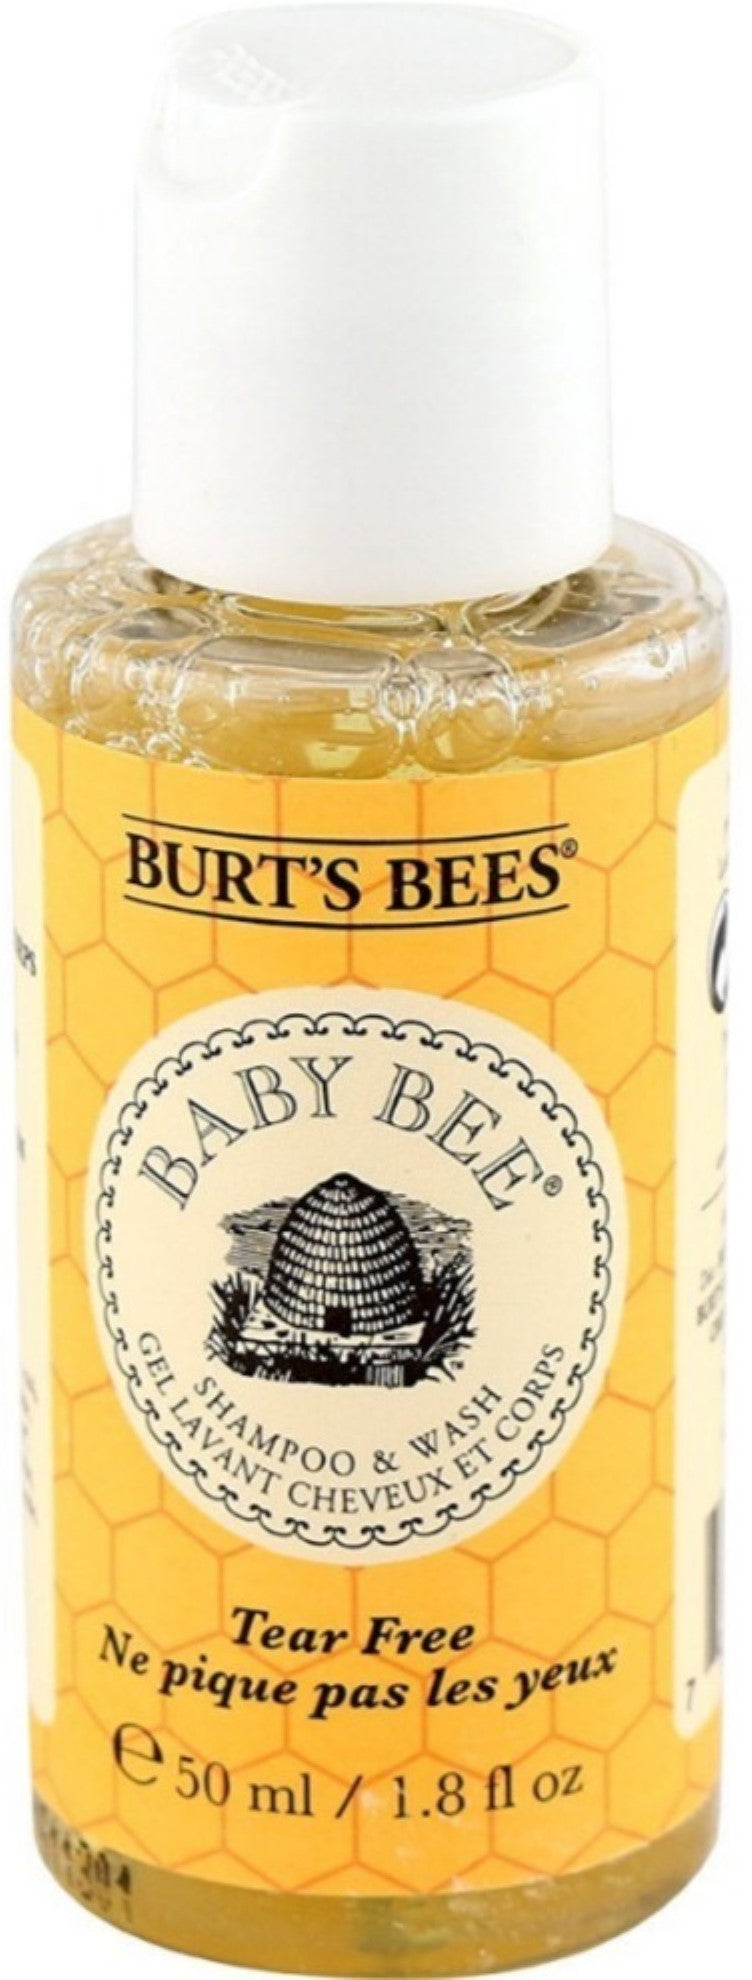 Burt's Bees Baby Bee Shampoo & Body Wash  1.8 oz